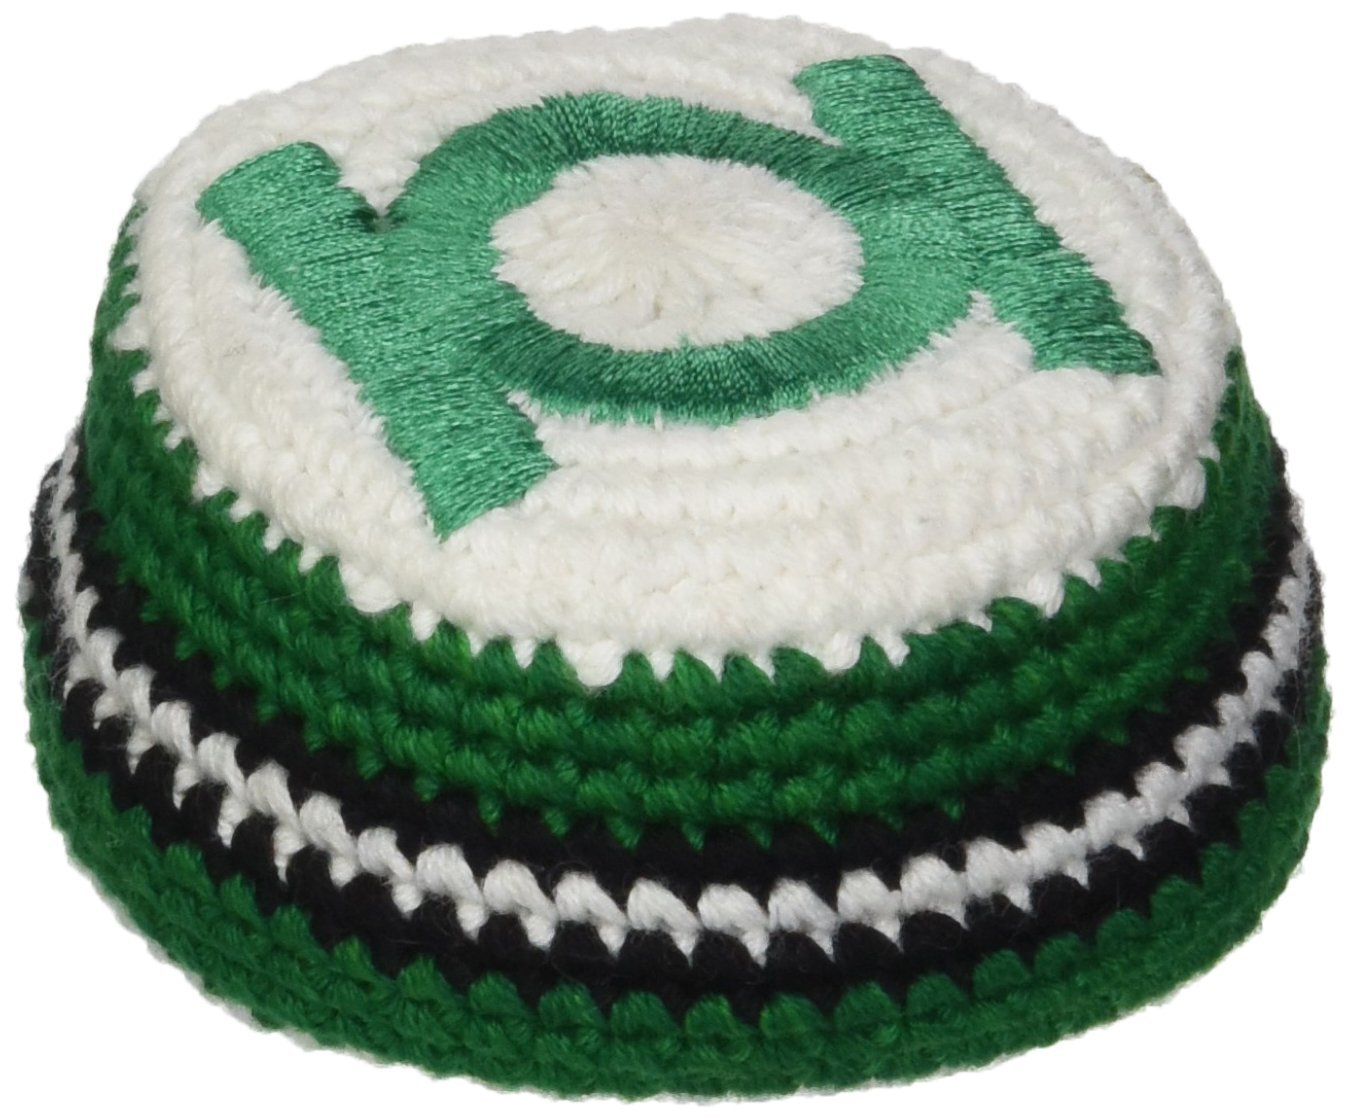 Green Lantern Logo Embroidered Crocheted Footbag